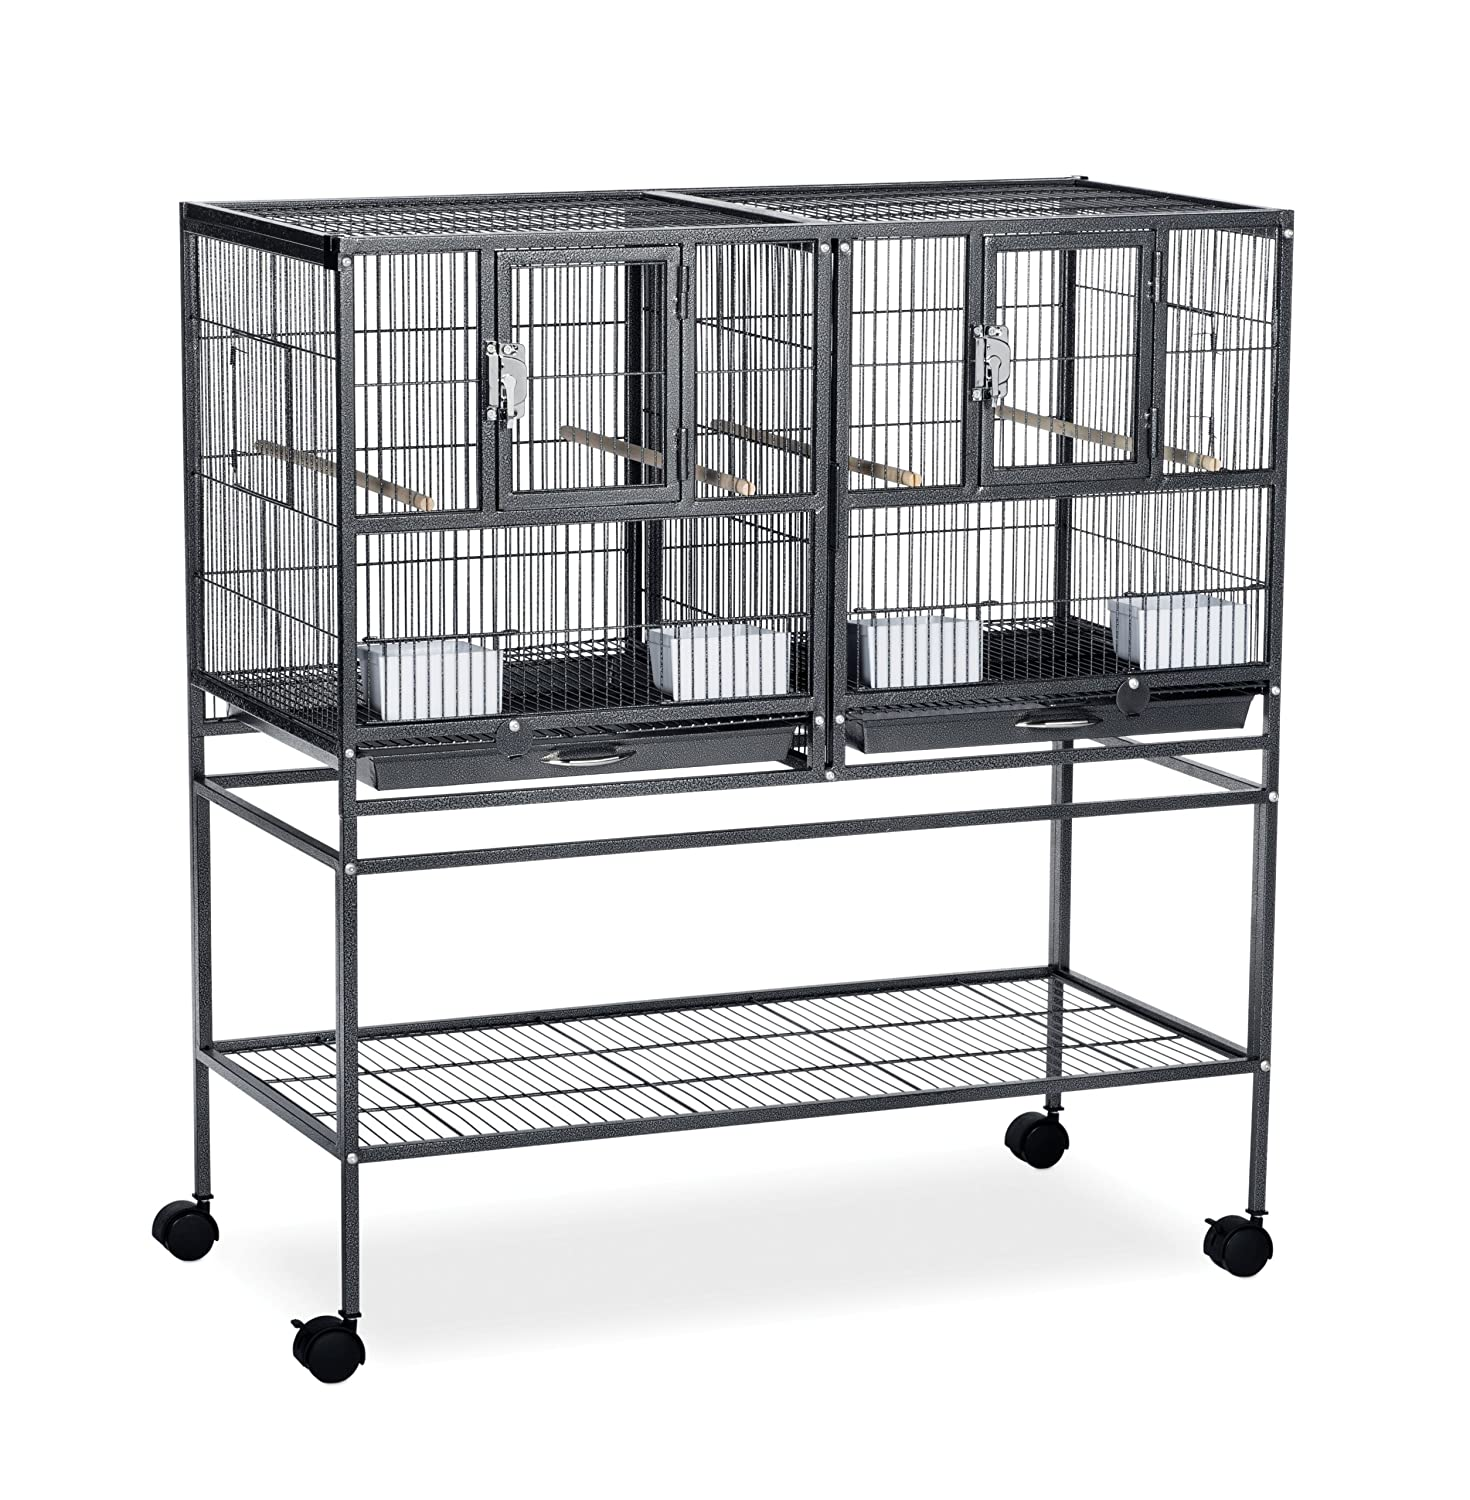 Prevue Pet Products Hampton Deluxe Divided Breeder Cage System with Stand Inc. F070